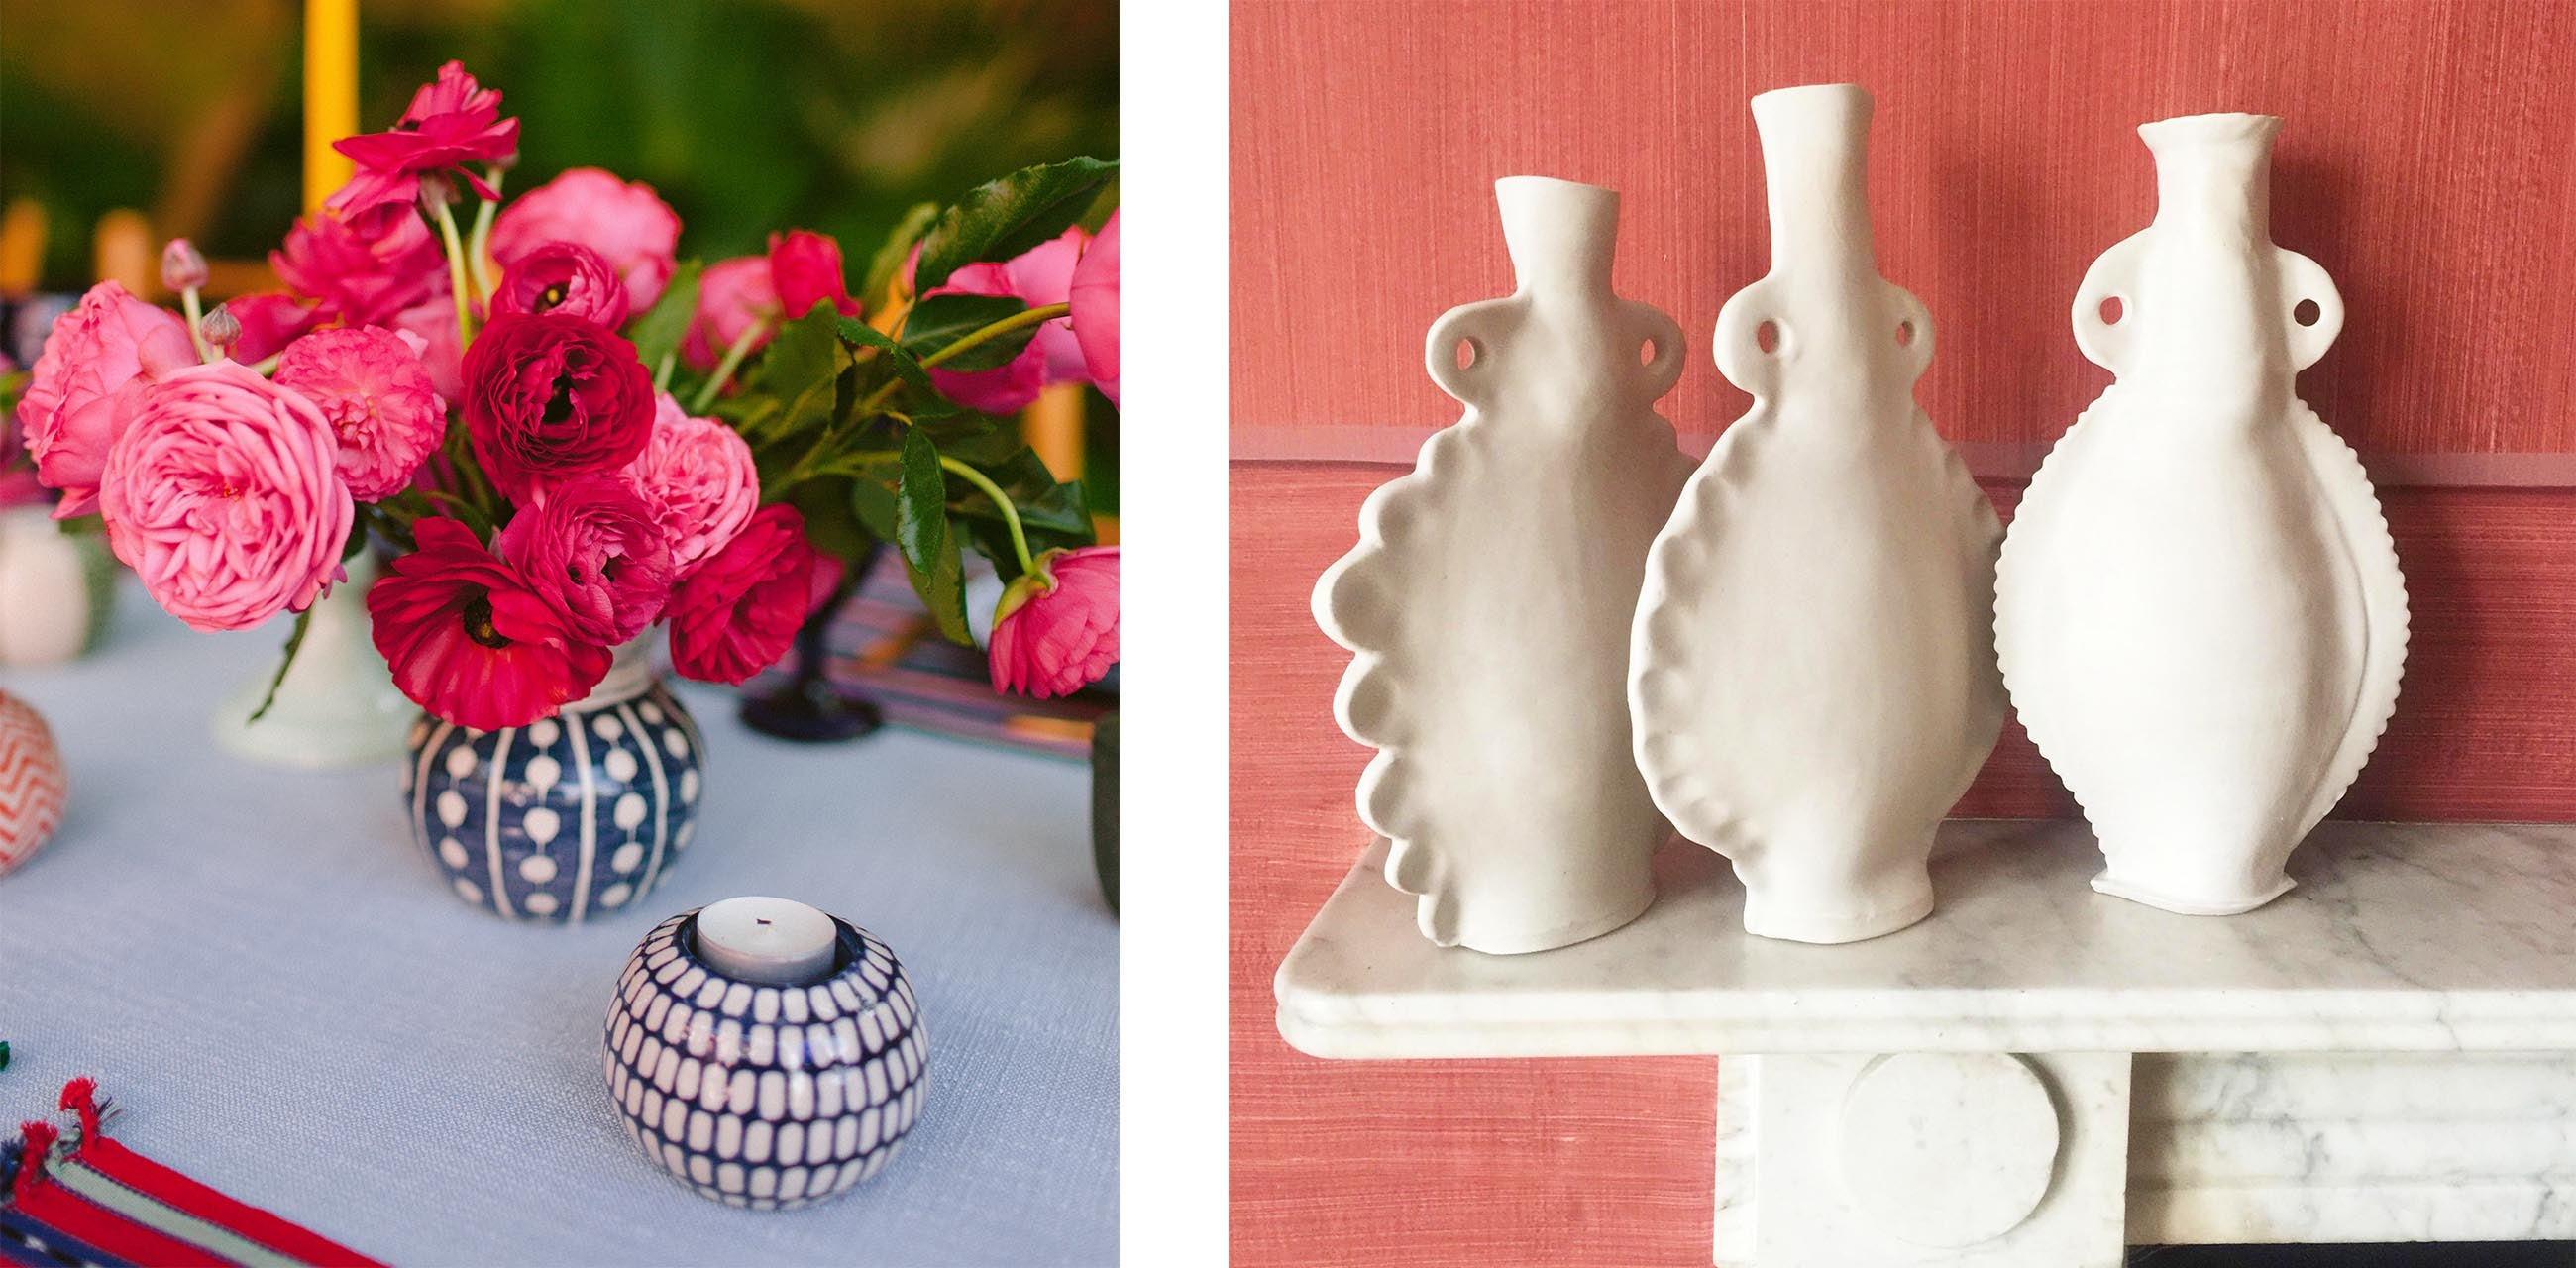 Buy wicklewood one of a kind vases and ceramics